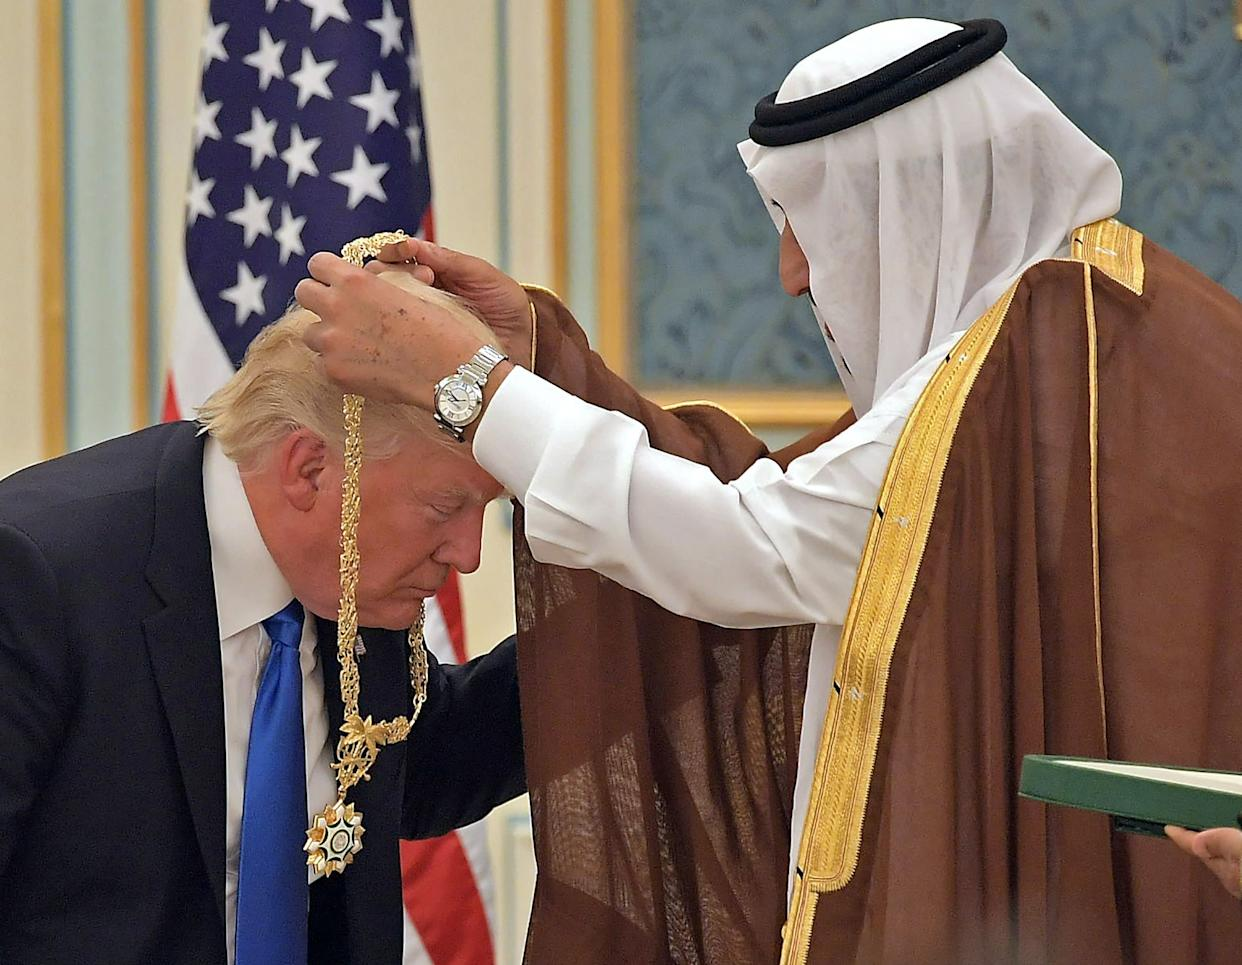 Trump receives the Order of Abdul-Aziz Al Saud medal from King Salman at the Saudi Royal Court in Riyadh on May 20, 2017.